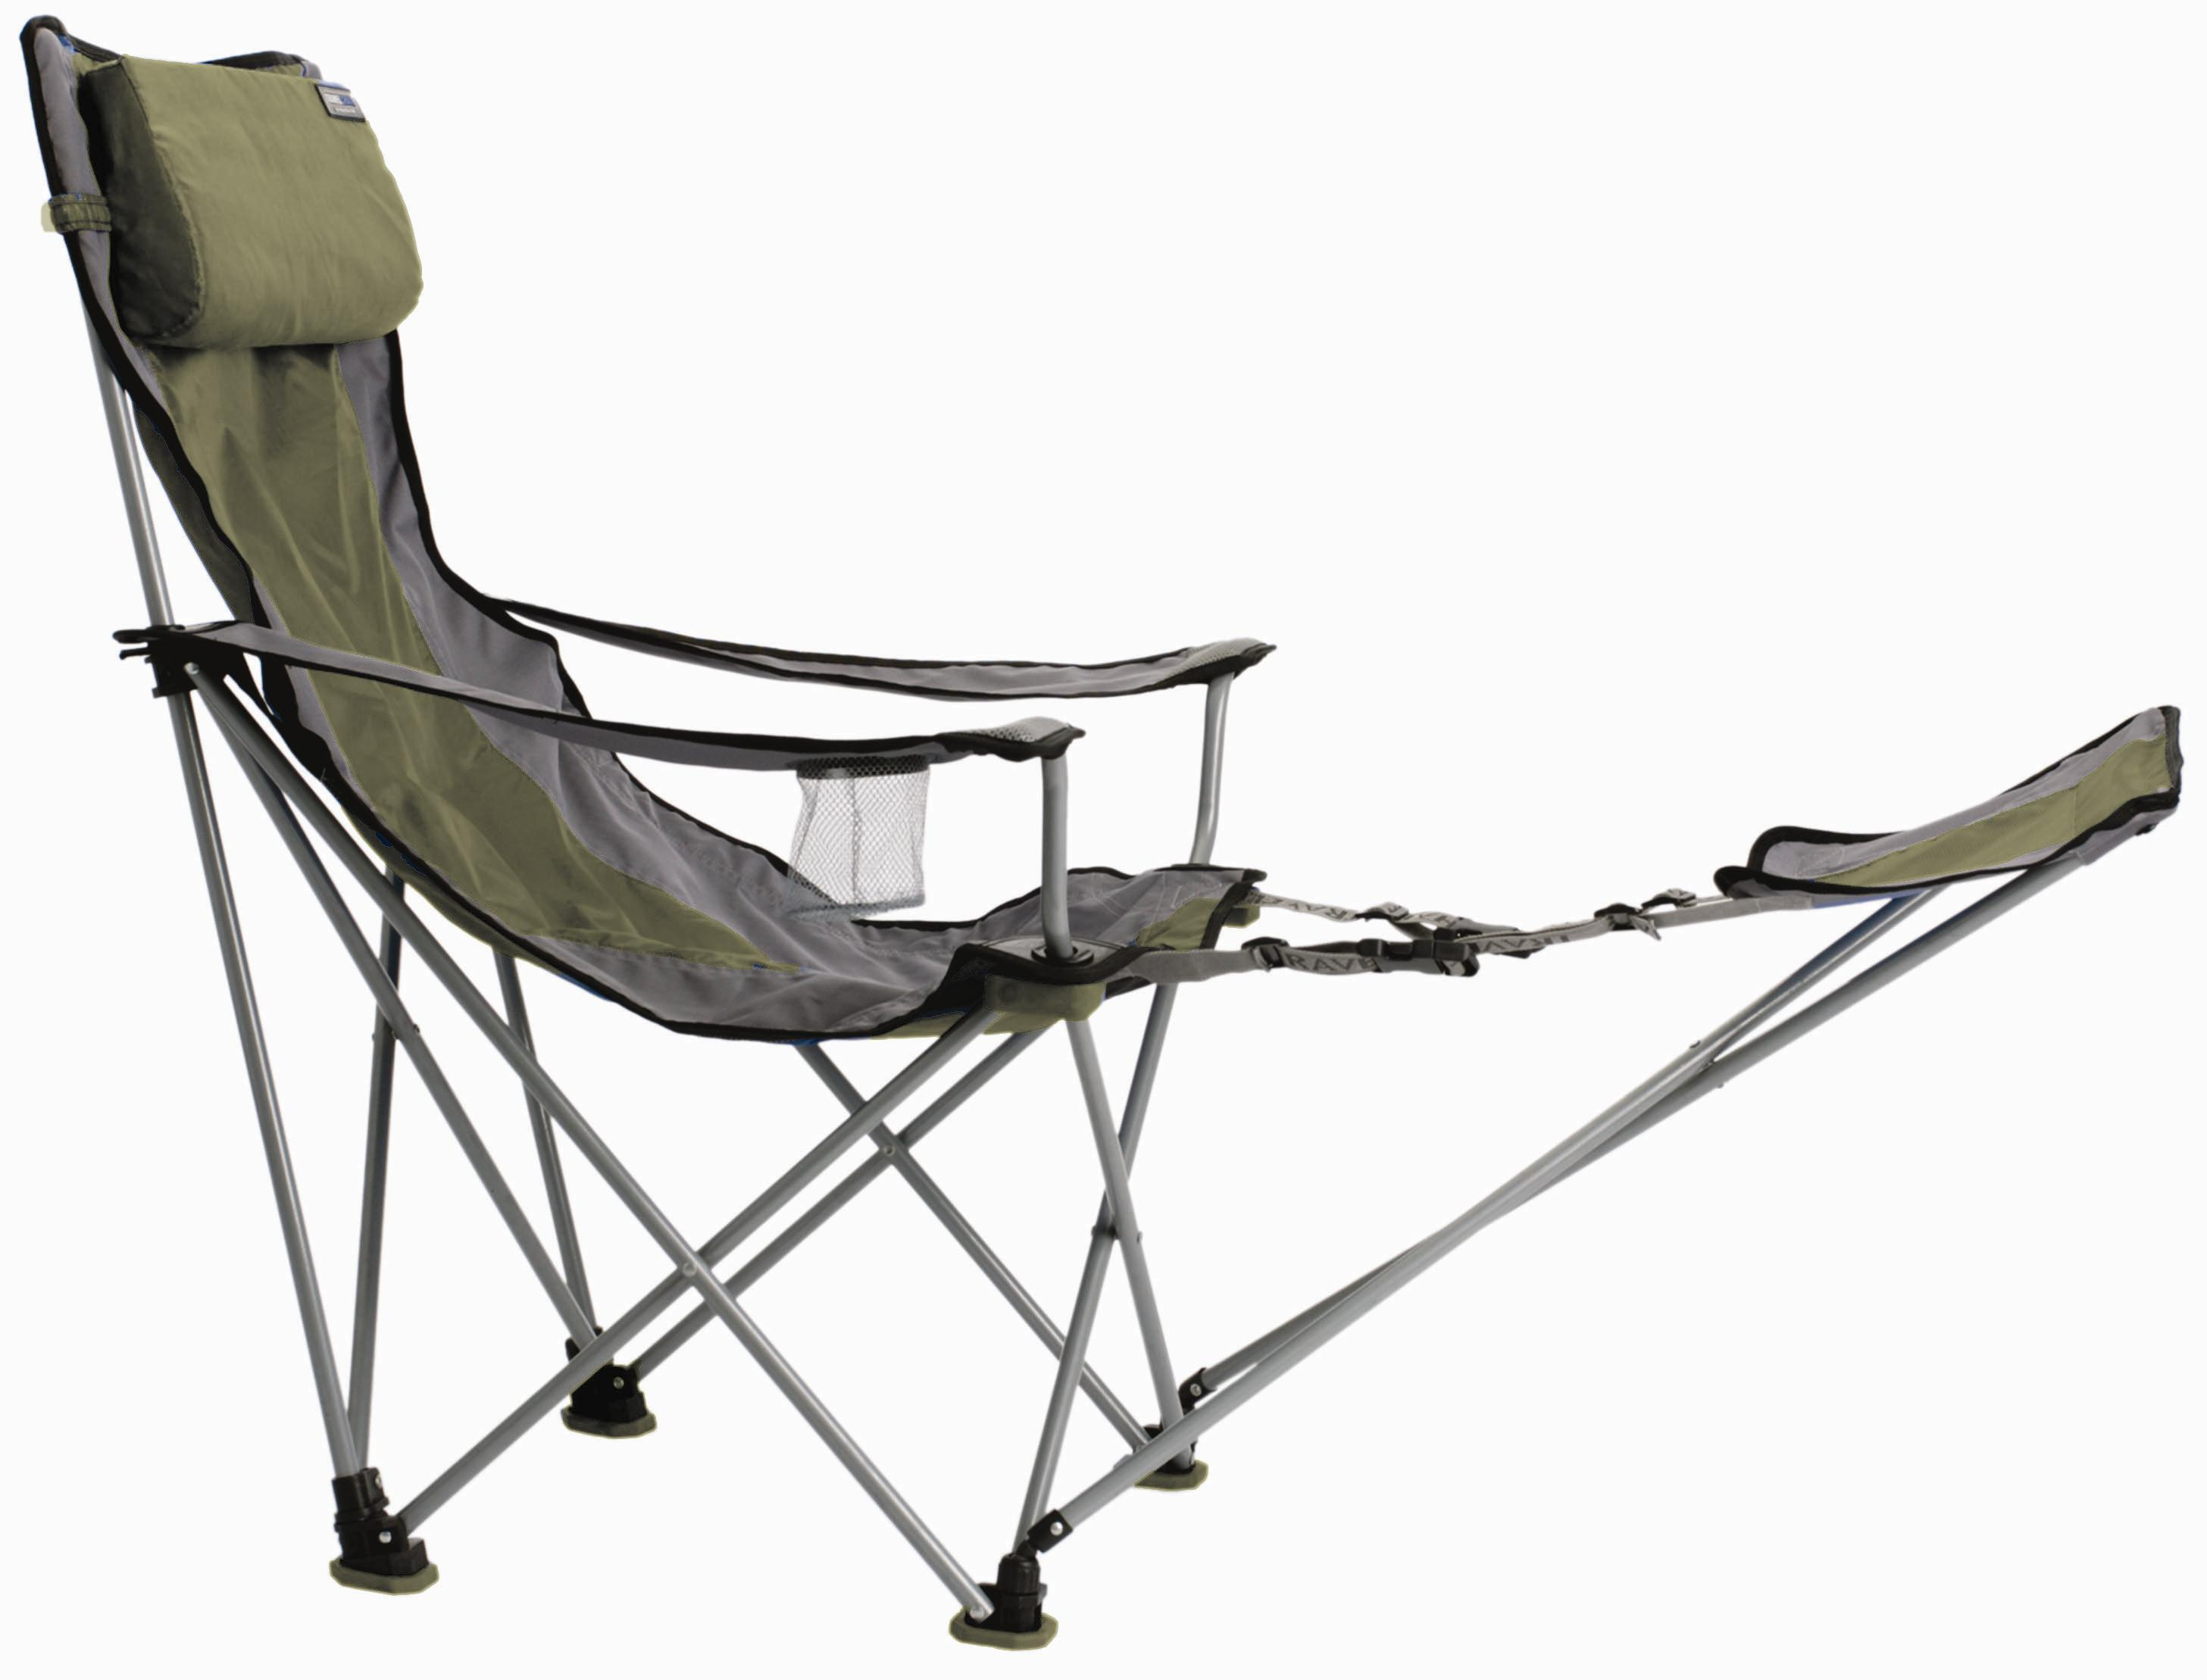 Camping Chair With Footrest Travel Chair Big Bubba Folding Outdoor Chair Green